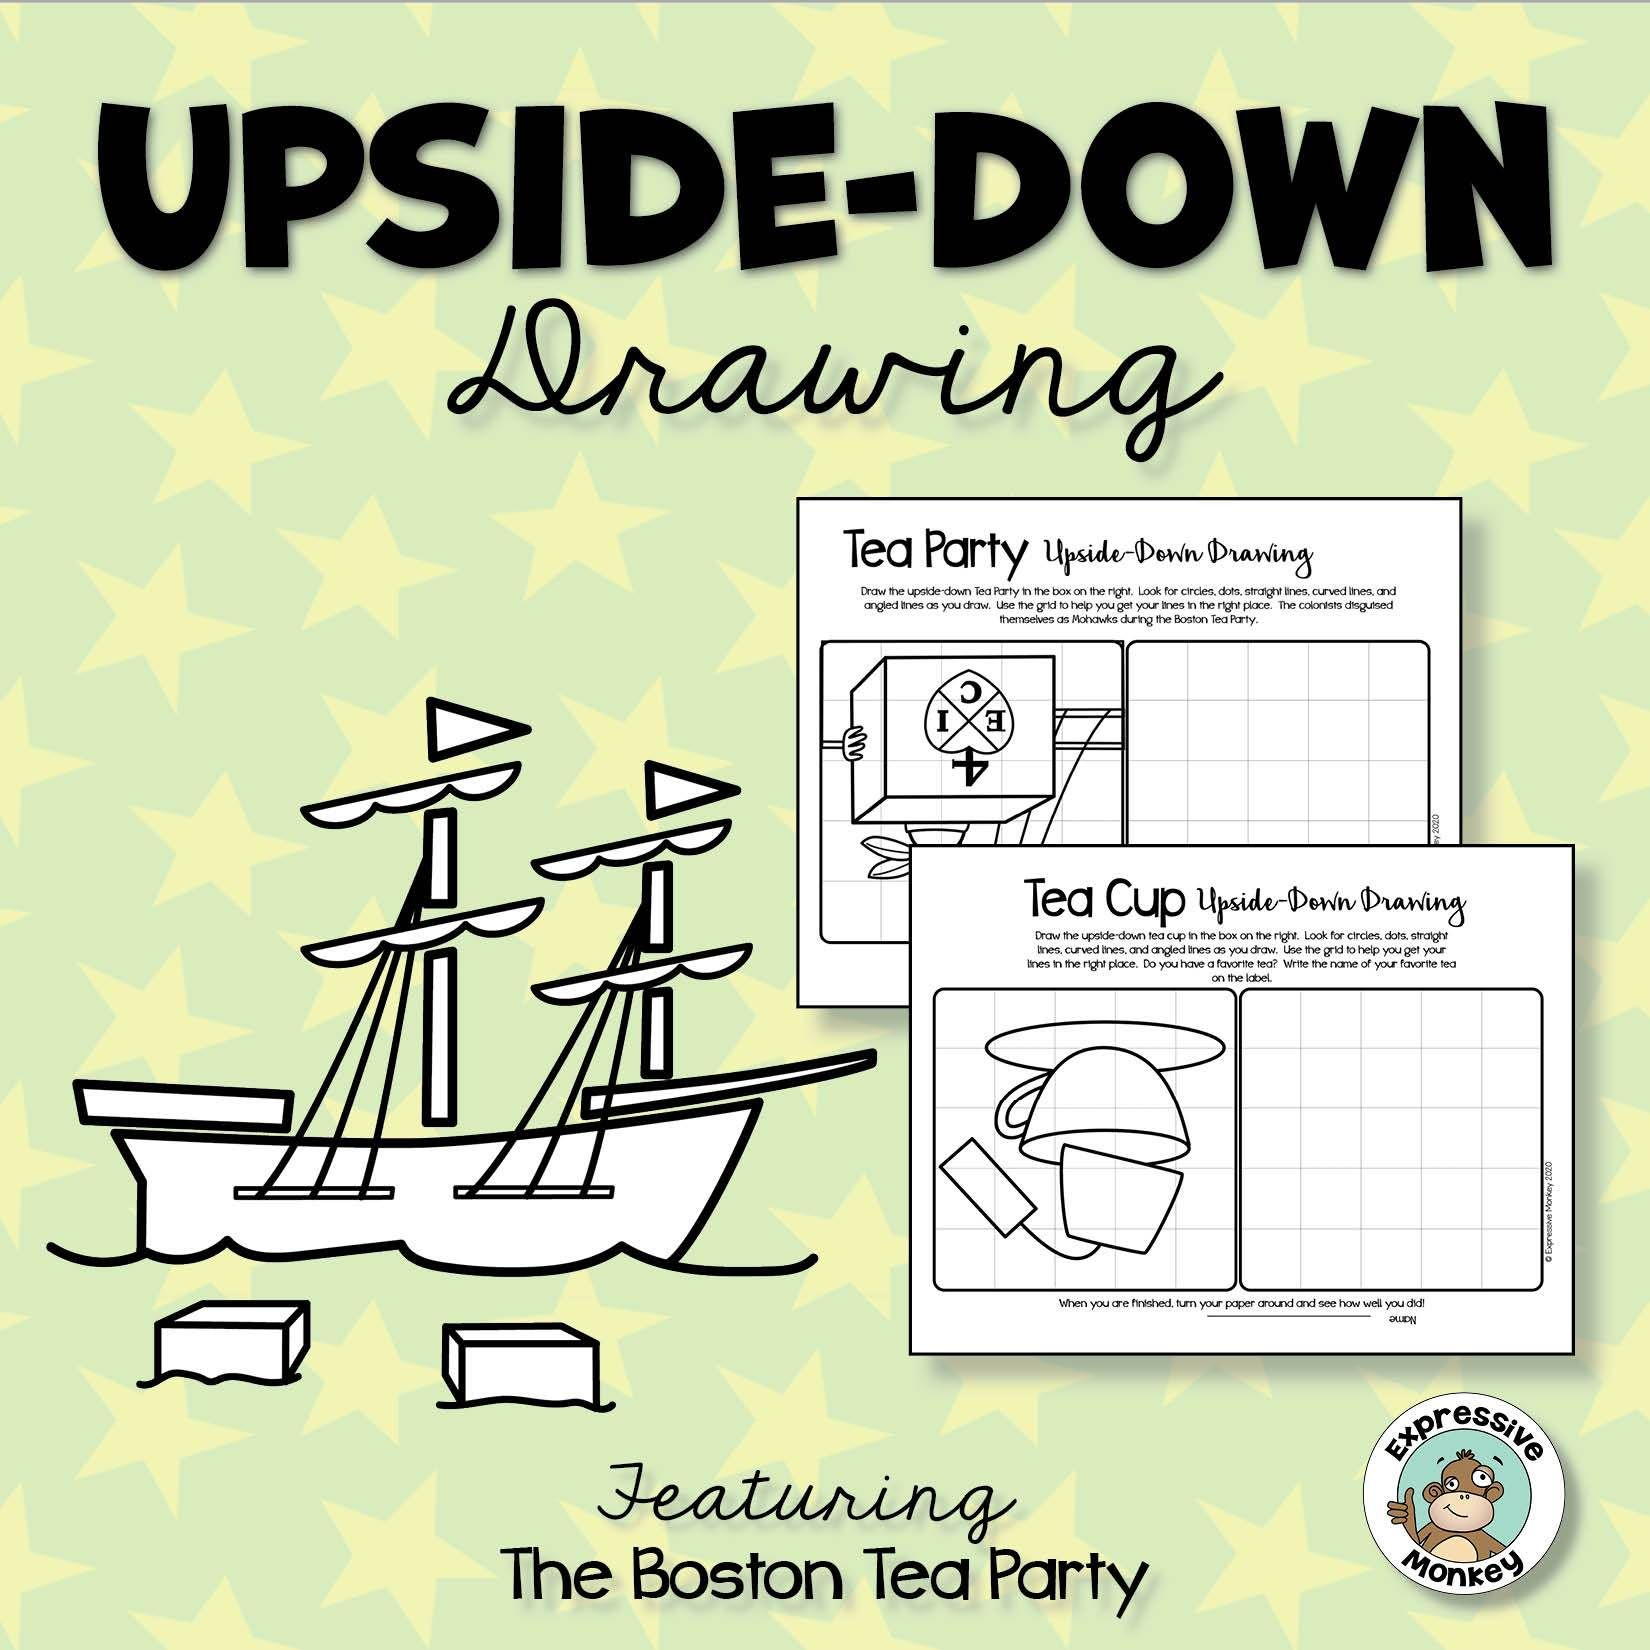 small resolution of Boston Tea Party Upside-Down Drawing   Boston tea party lesson